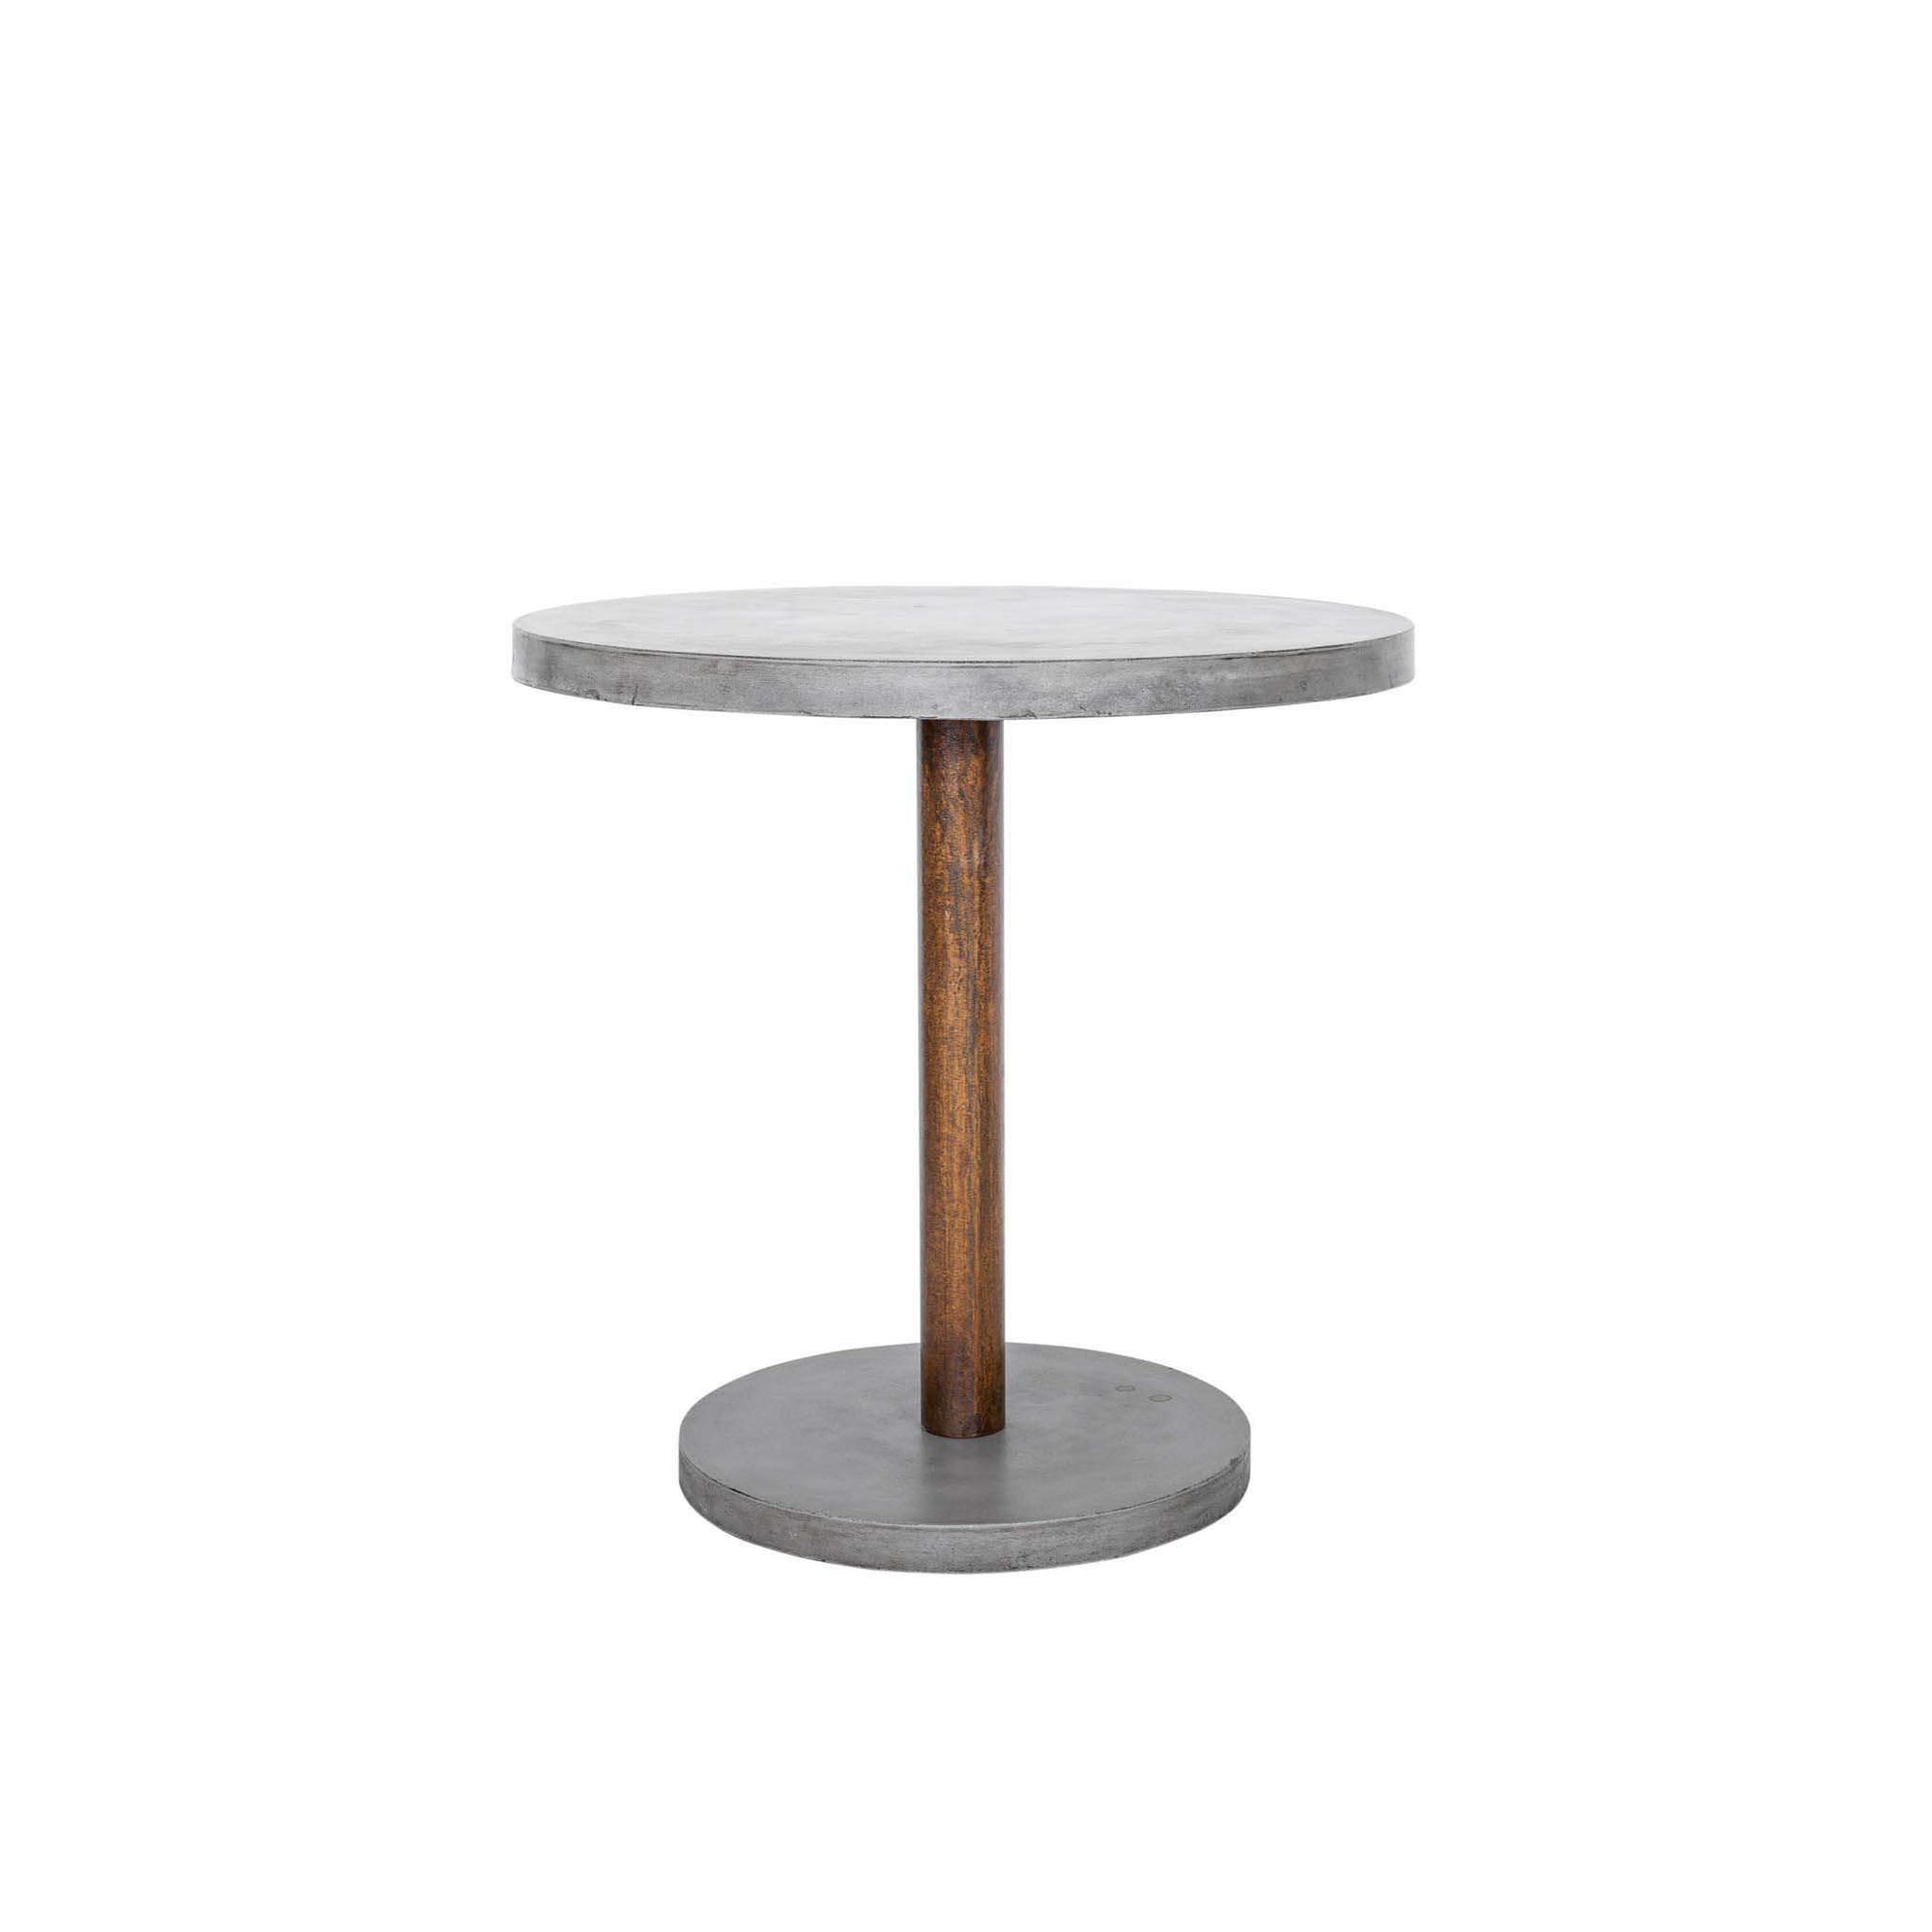 MOES-HAGAN OUTDOOR COUNTER HEIGHT TABLE-Outdoor Dining Tables-MODTEMPO